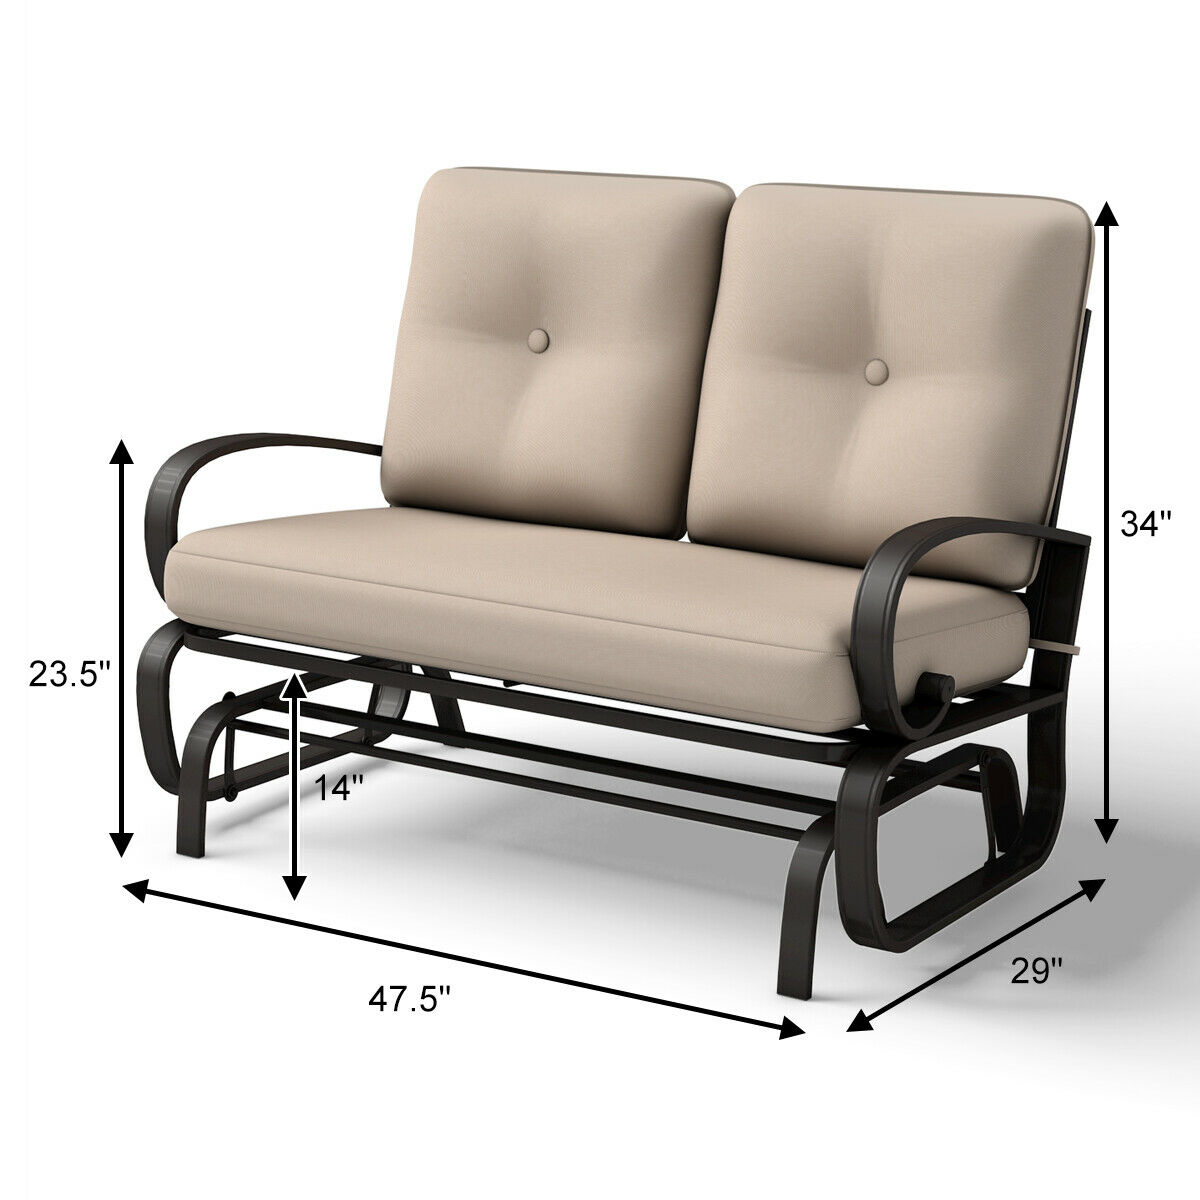 Costway Glider Outdoor Patio Rocking Bench Loveseat Pertaining To Outdoor Retro Metal Double Glider Benches (View 18 of 25)